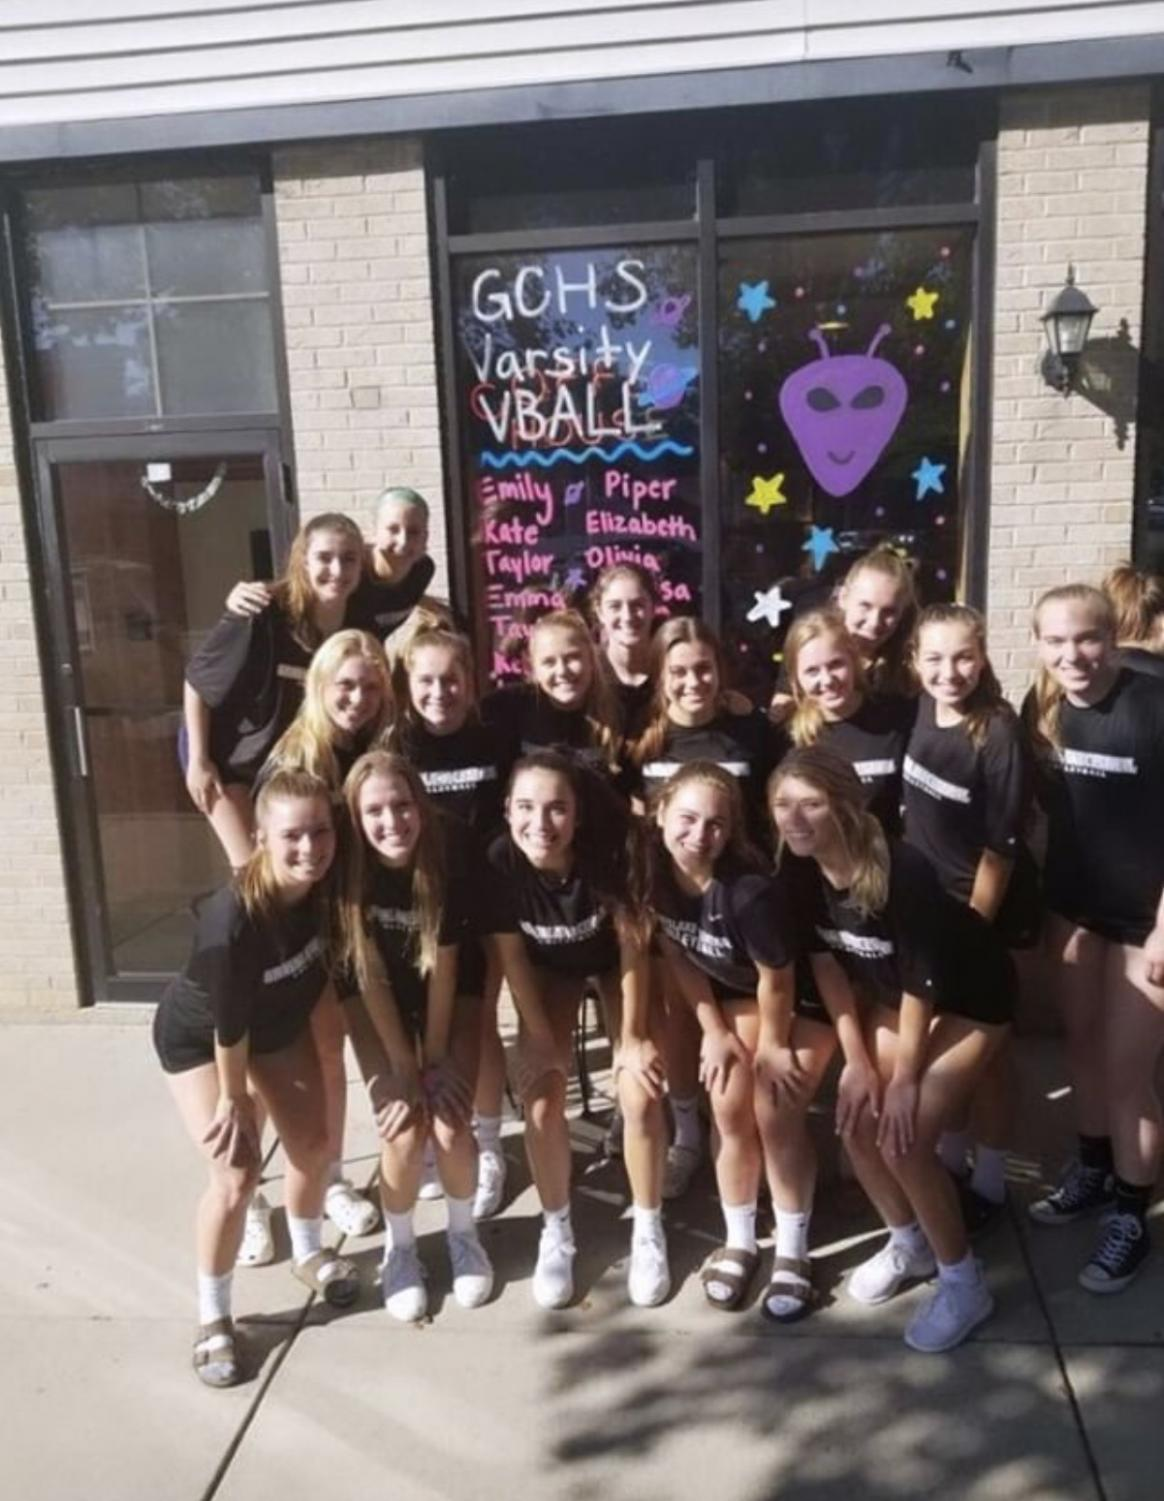 Volleyball team spends time together at the window painting event during their season.